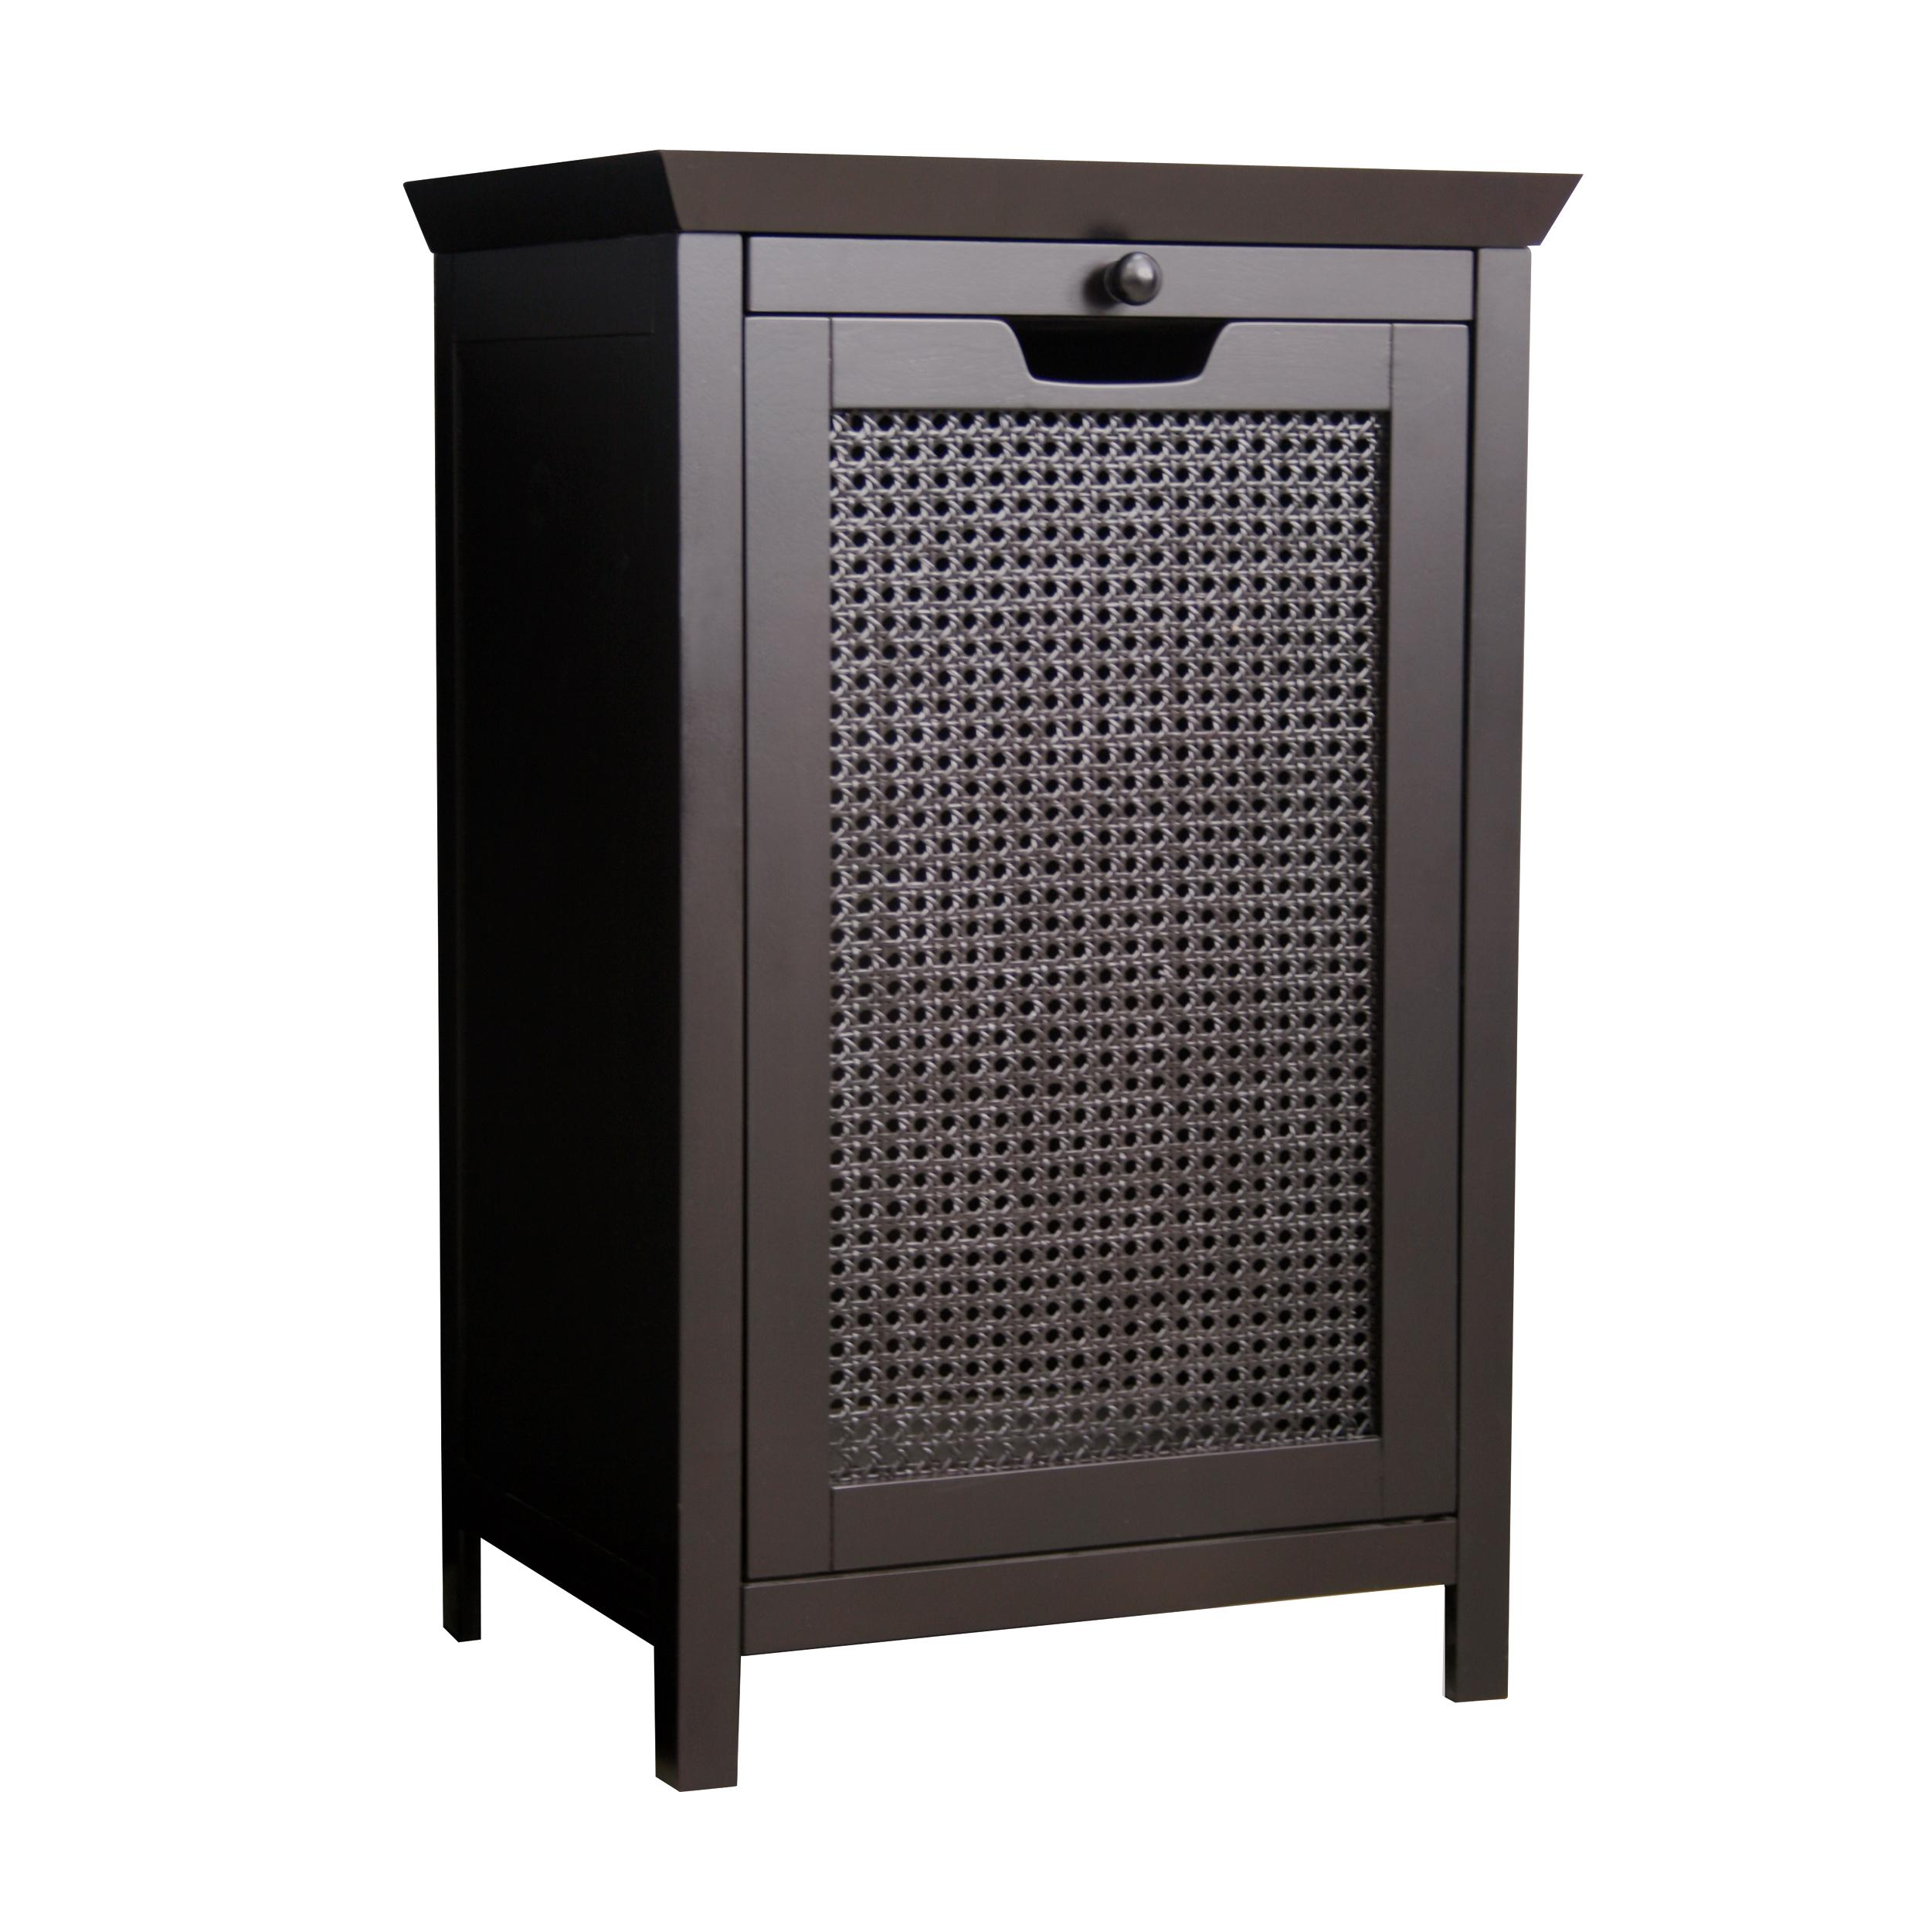 com shopping great deals on elegant home fashions bathroom cabinets